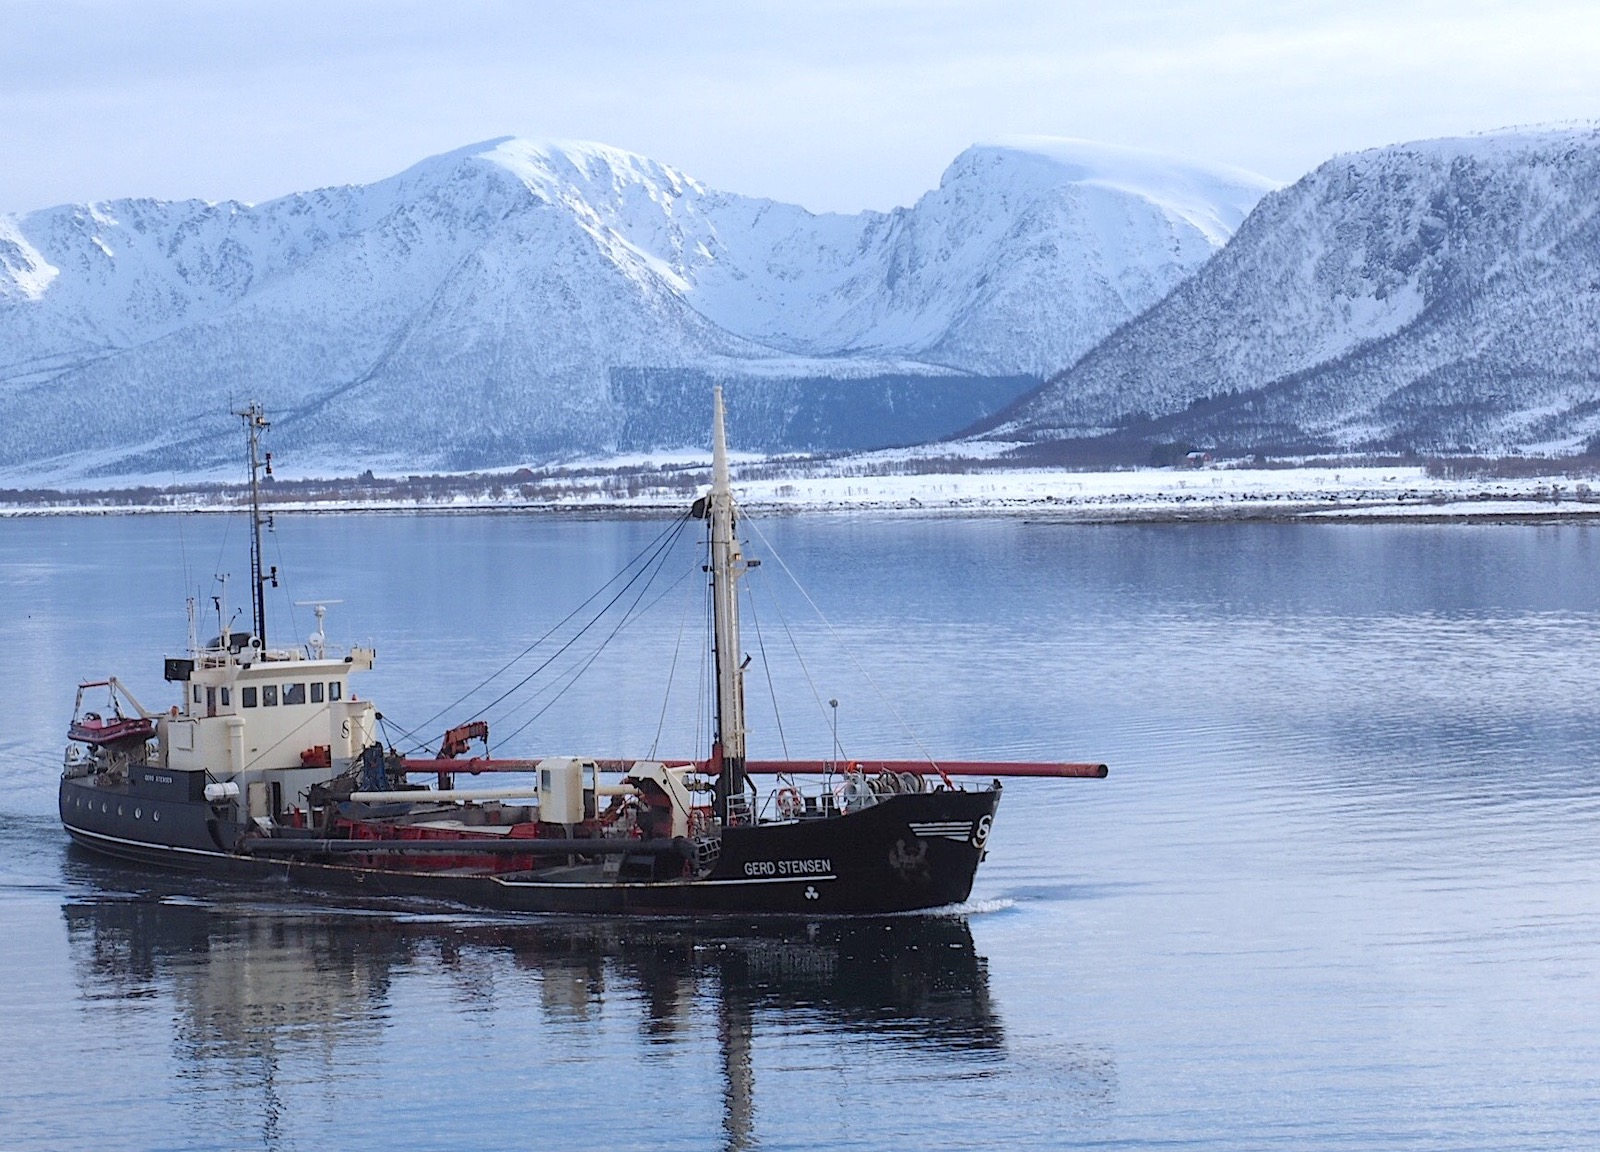 nordic-fishing-boat-by-gordon